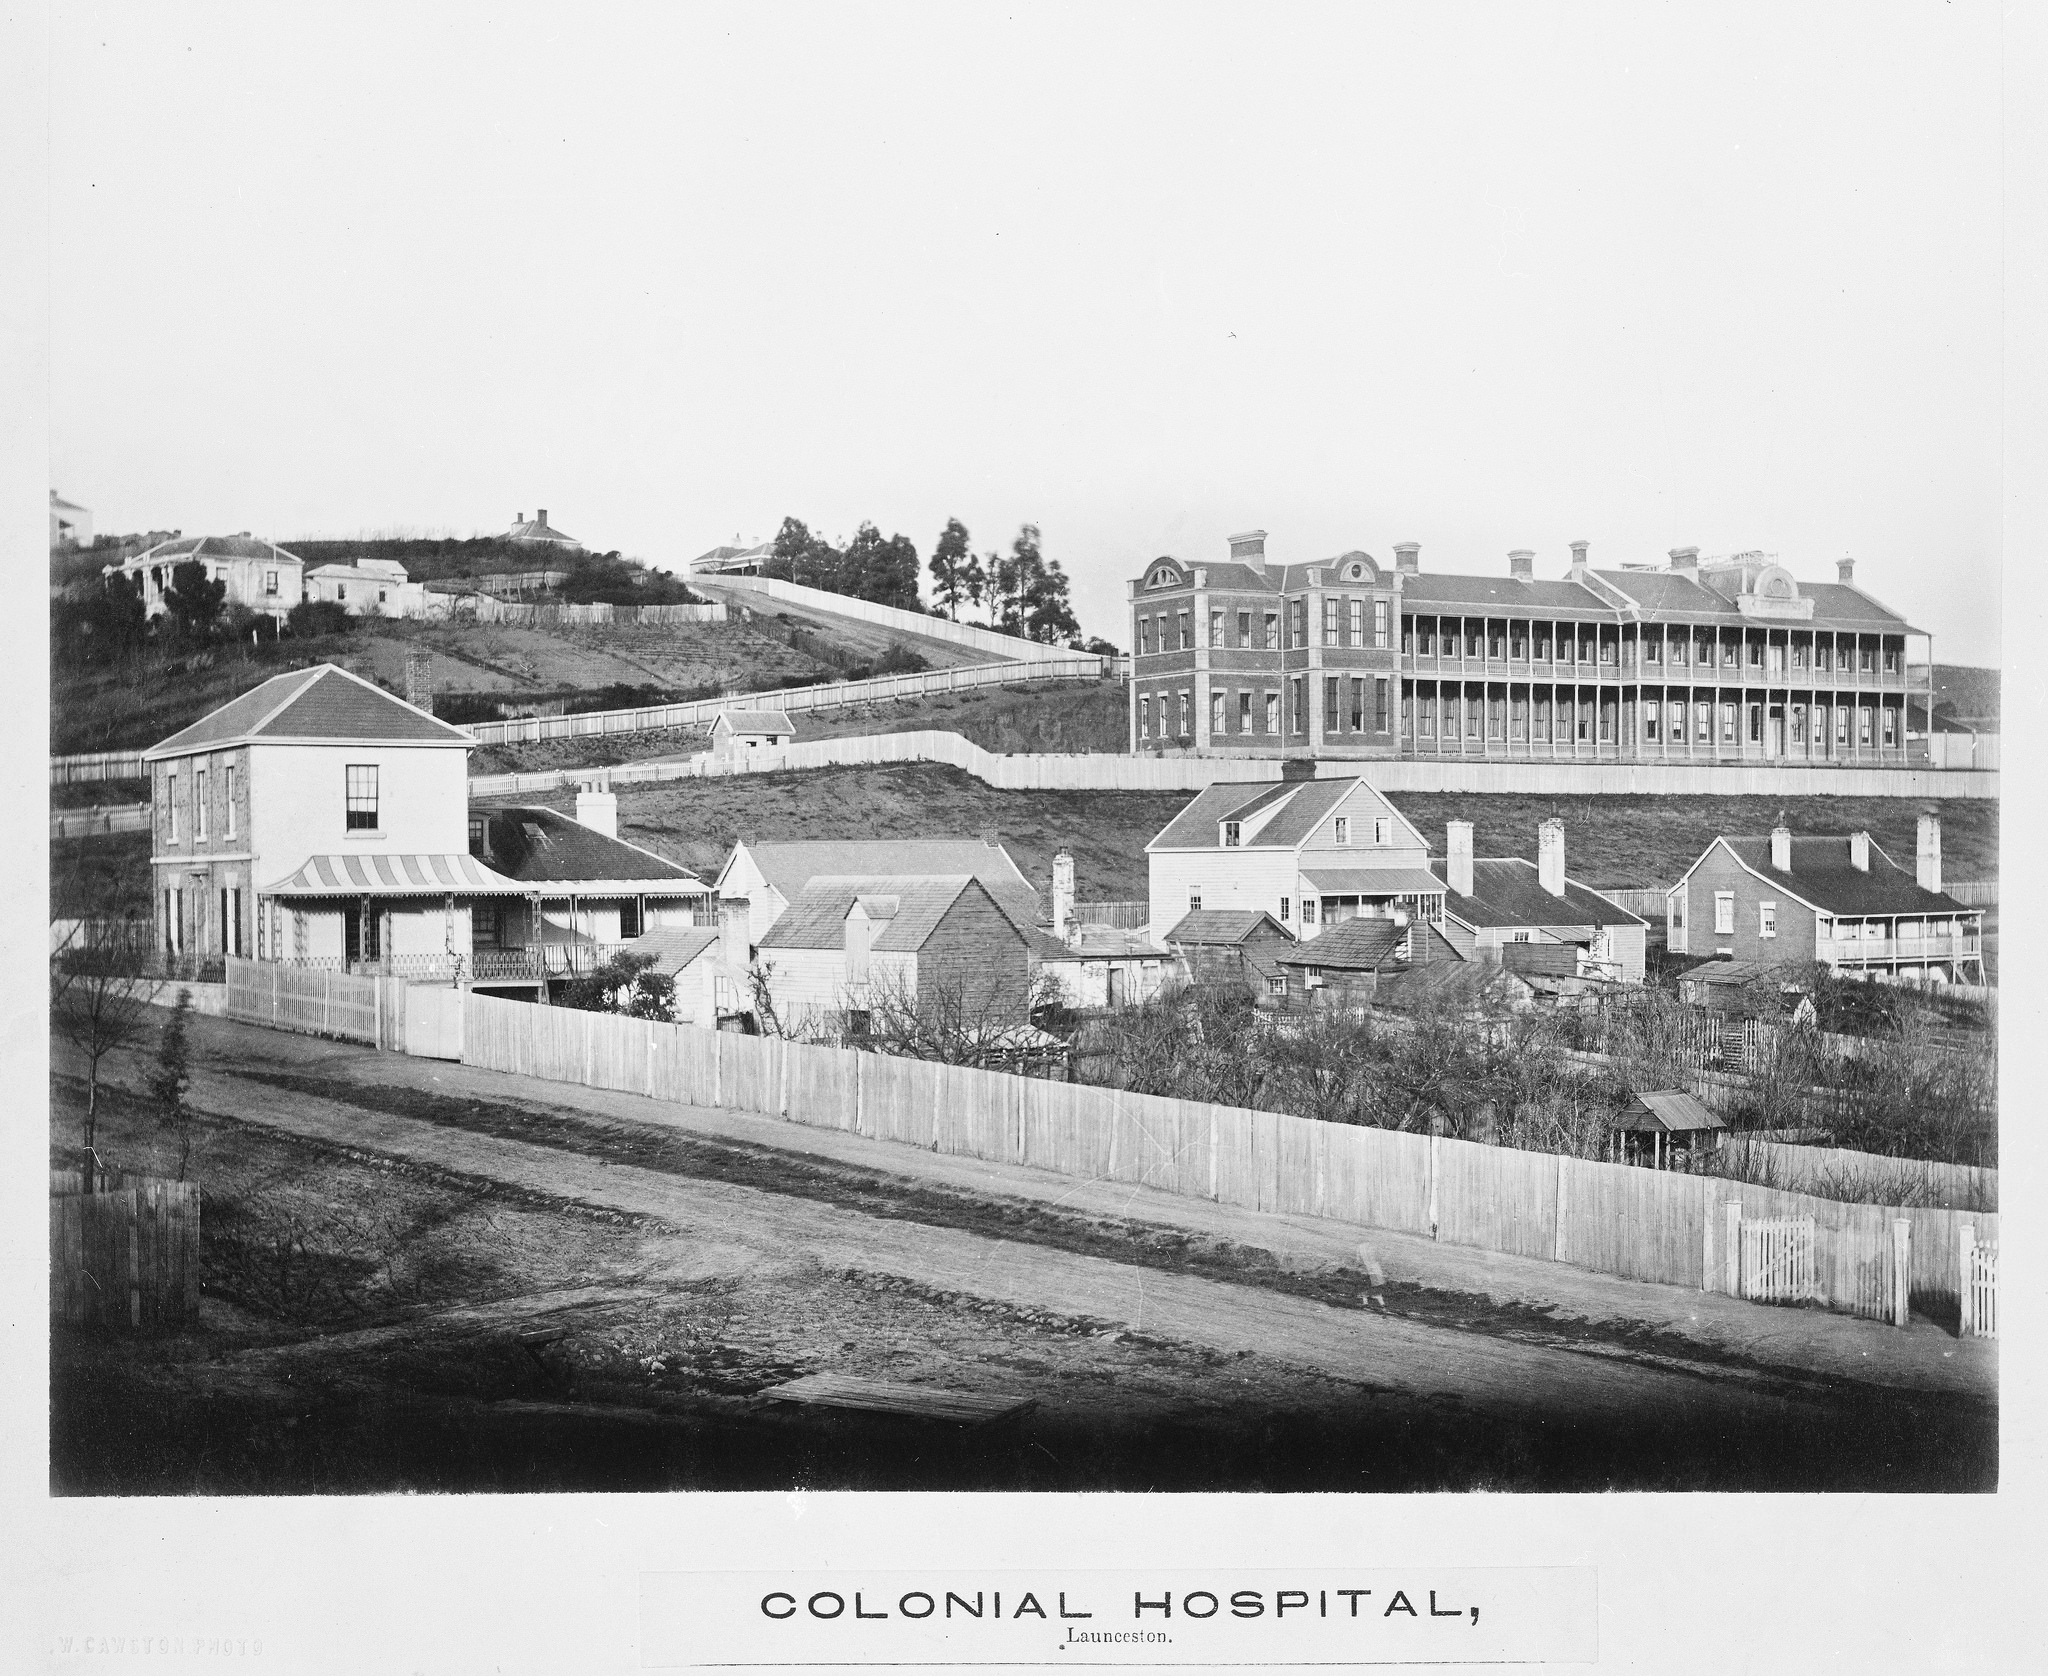 My photography is informed by researching archives so I have a deeper understanding of how a building site changed over time. Here we can see the old hospital that was demolished for the 1930s hospital. Tasmanian Archive and Heritage Office: PH30-1-2 Photographer, William Cawston.